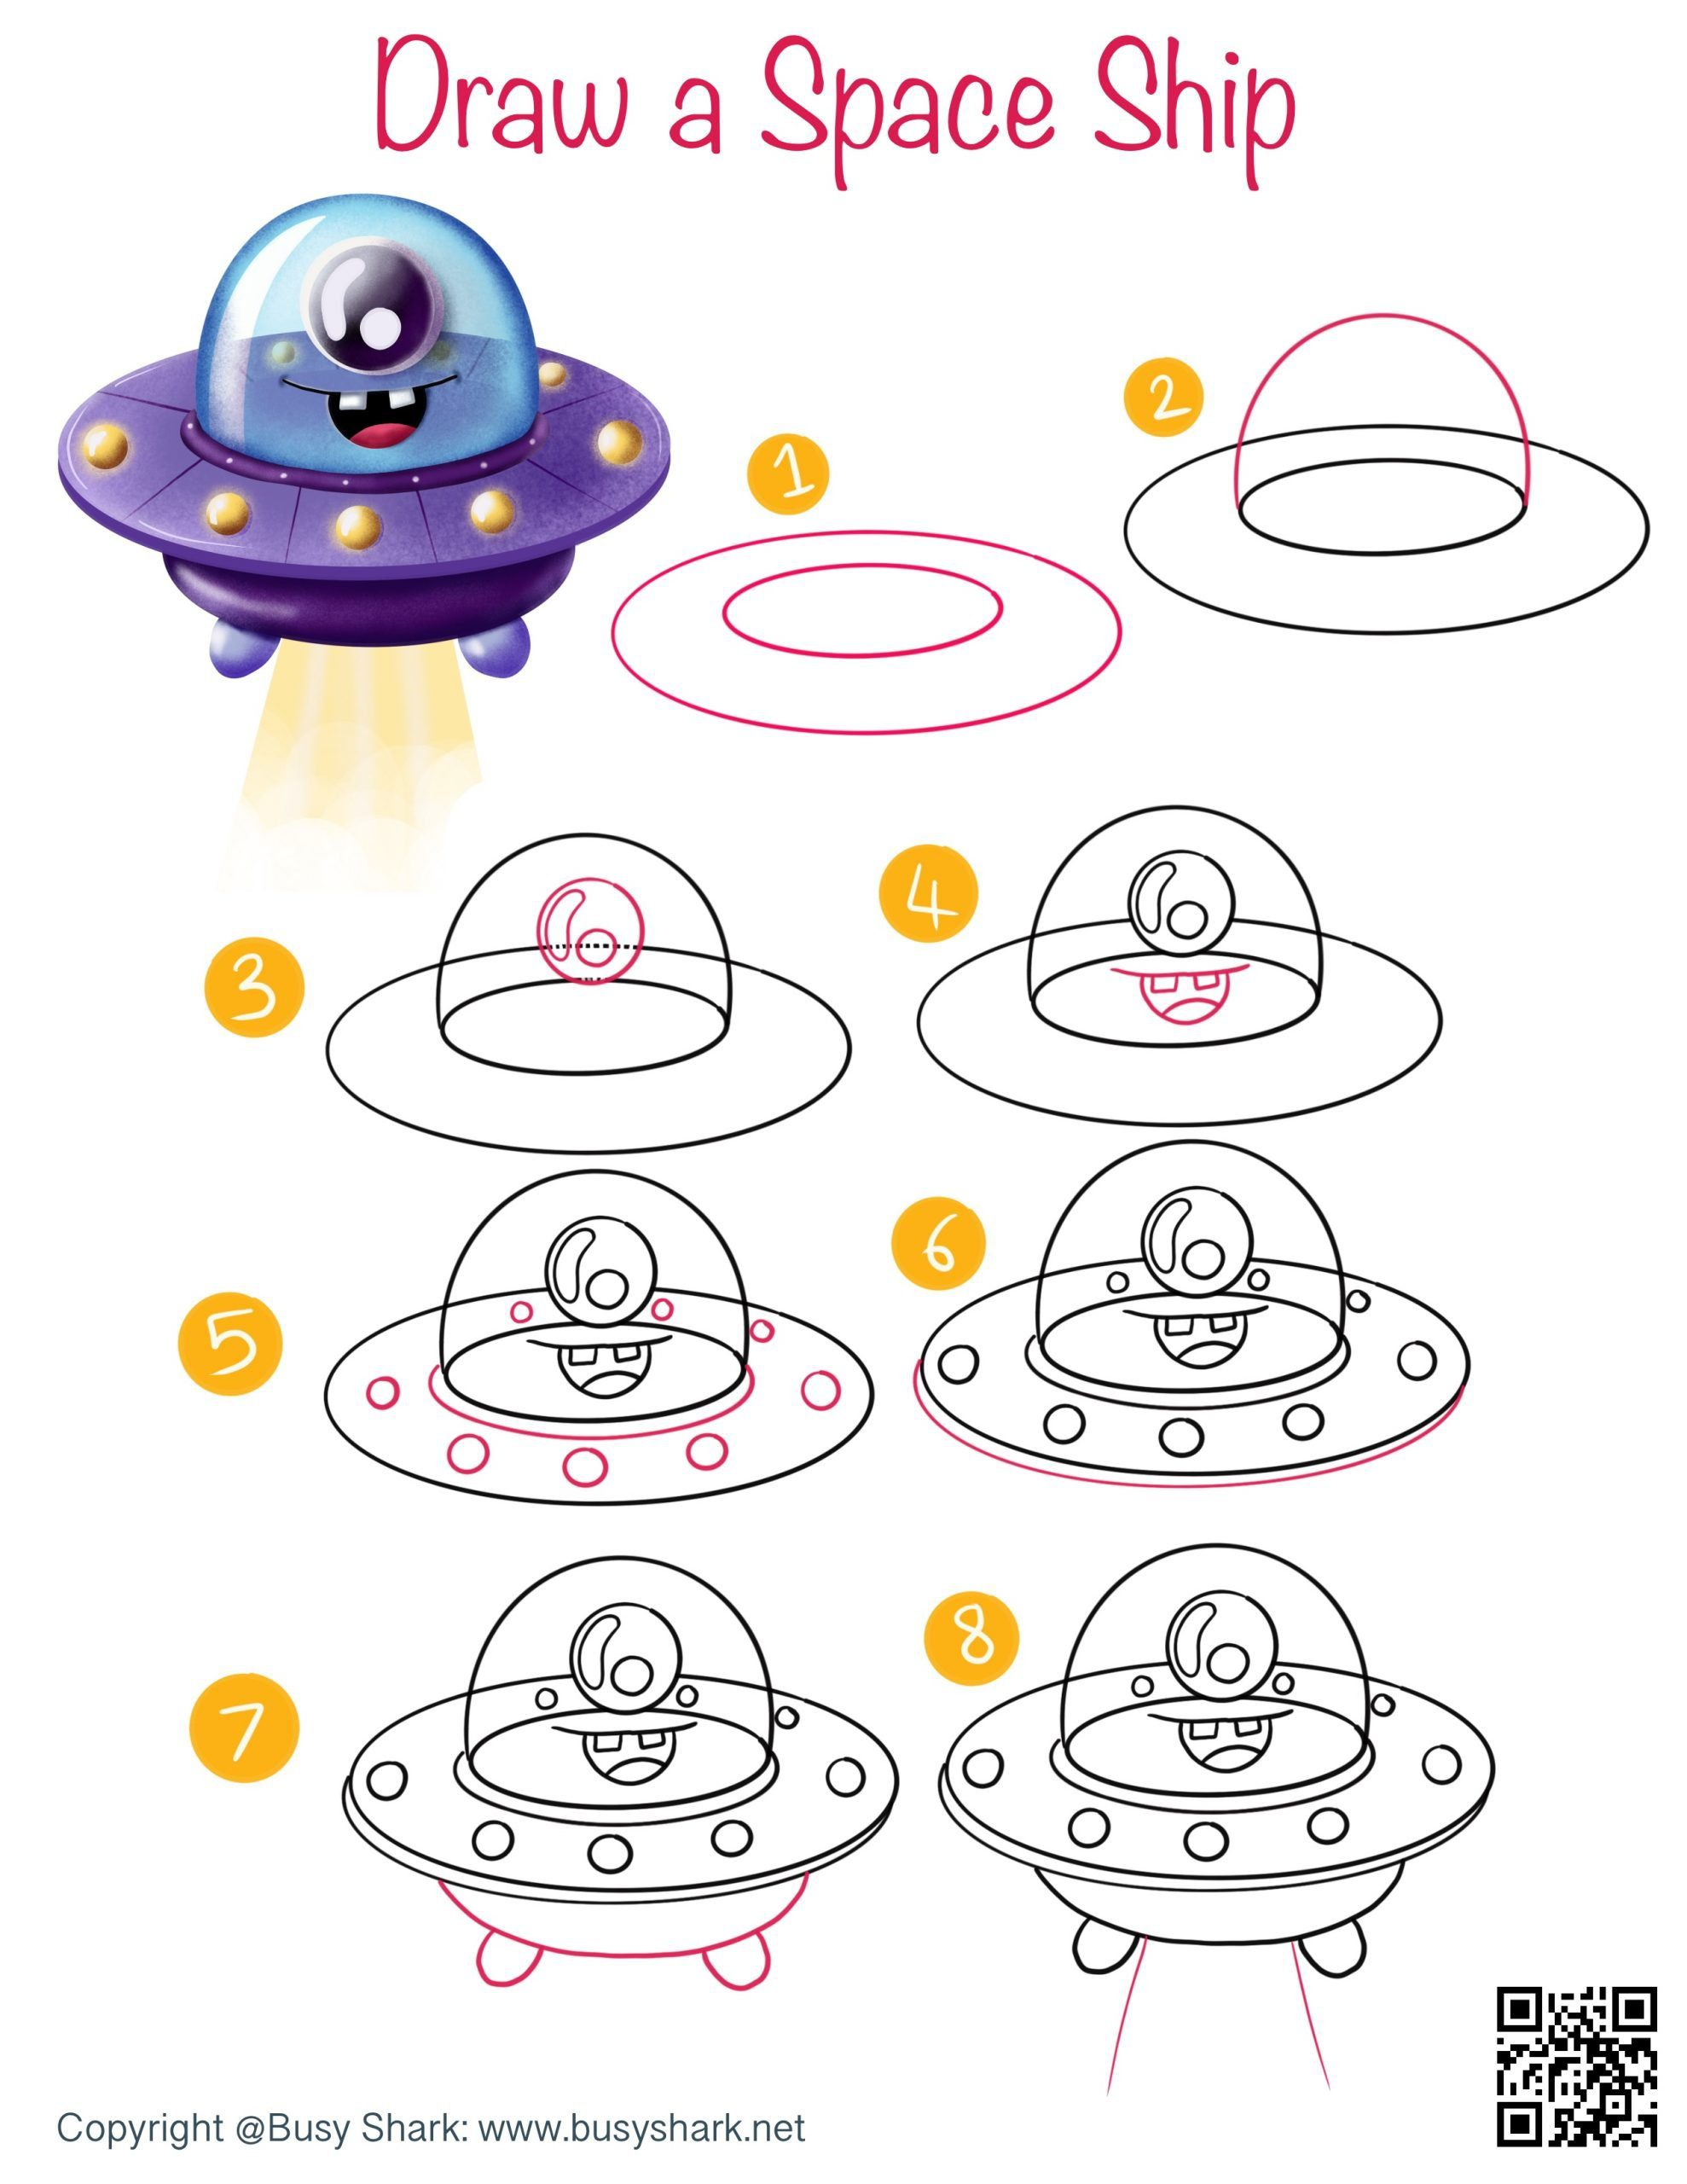 Draw a space ship step by step cartoon drawing for kids